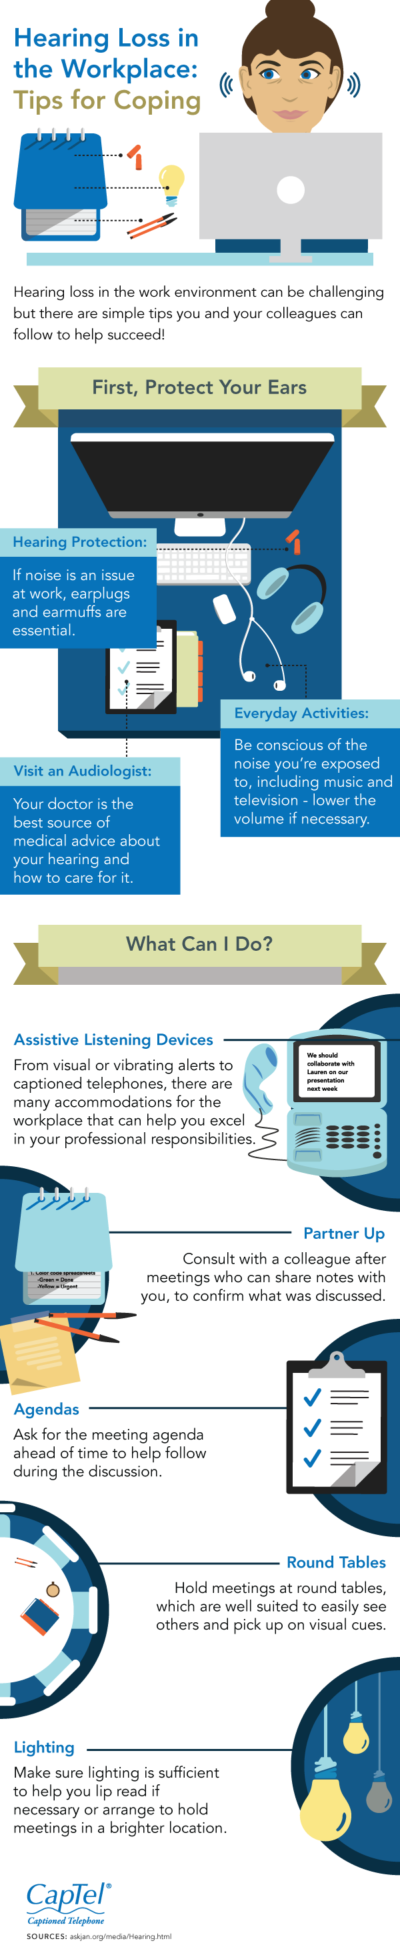 Hearing Loss in the Workplace: Tips for coping